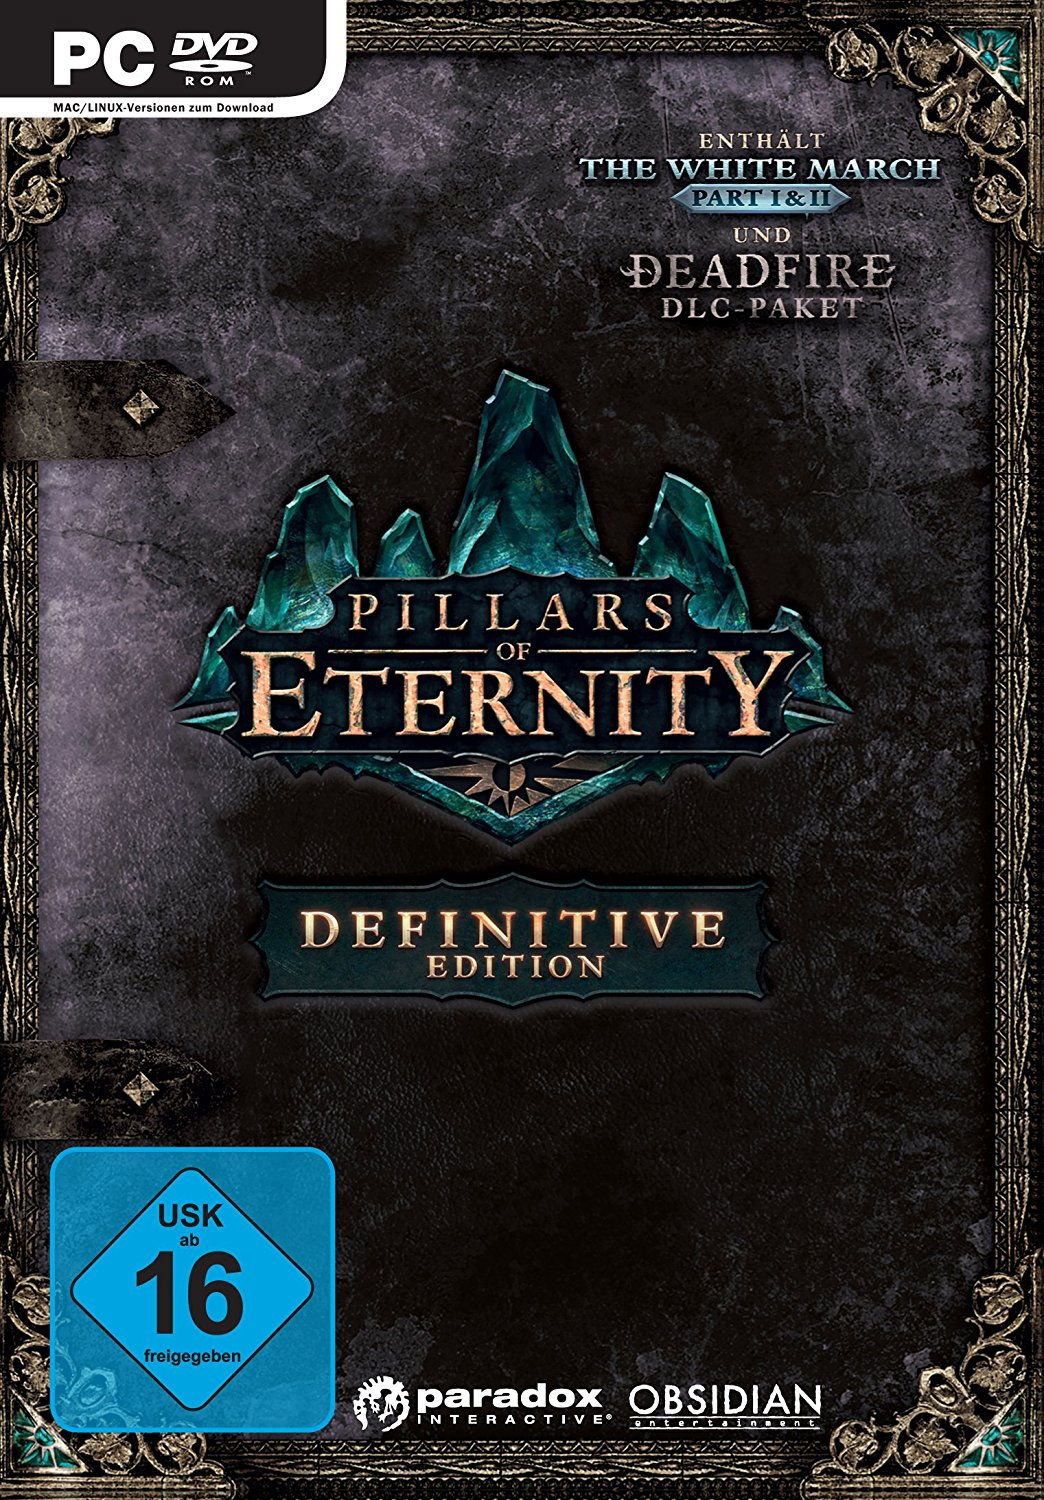 Pillars of Eternity - Definitive Edition